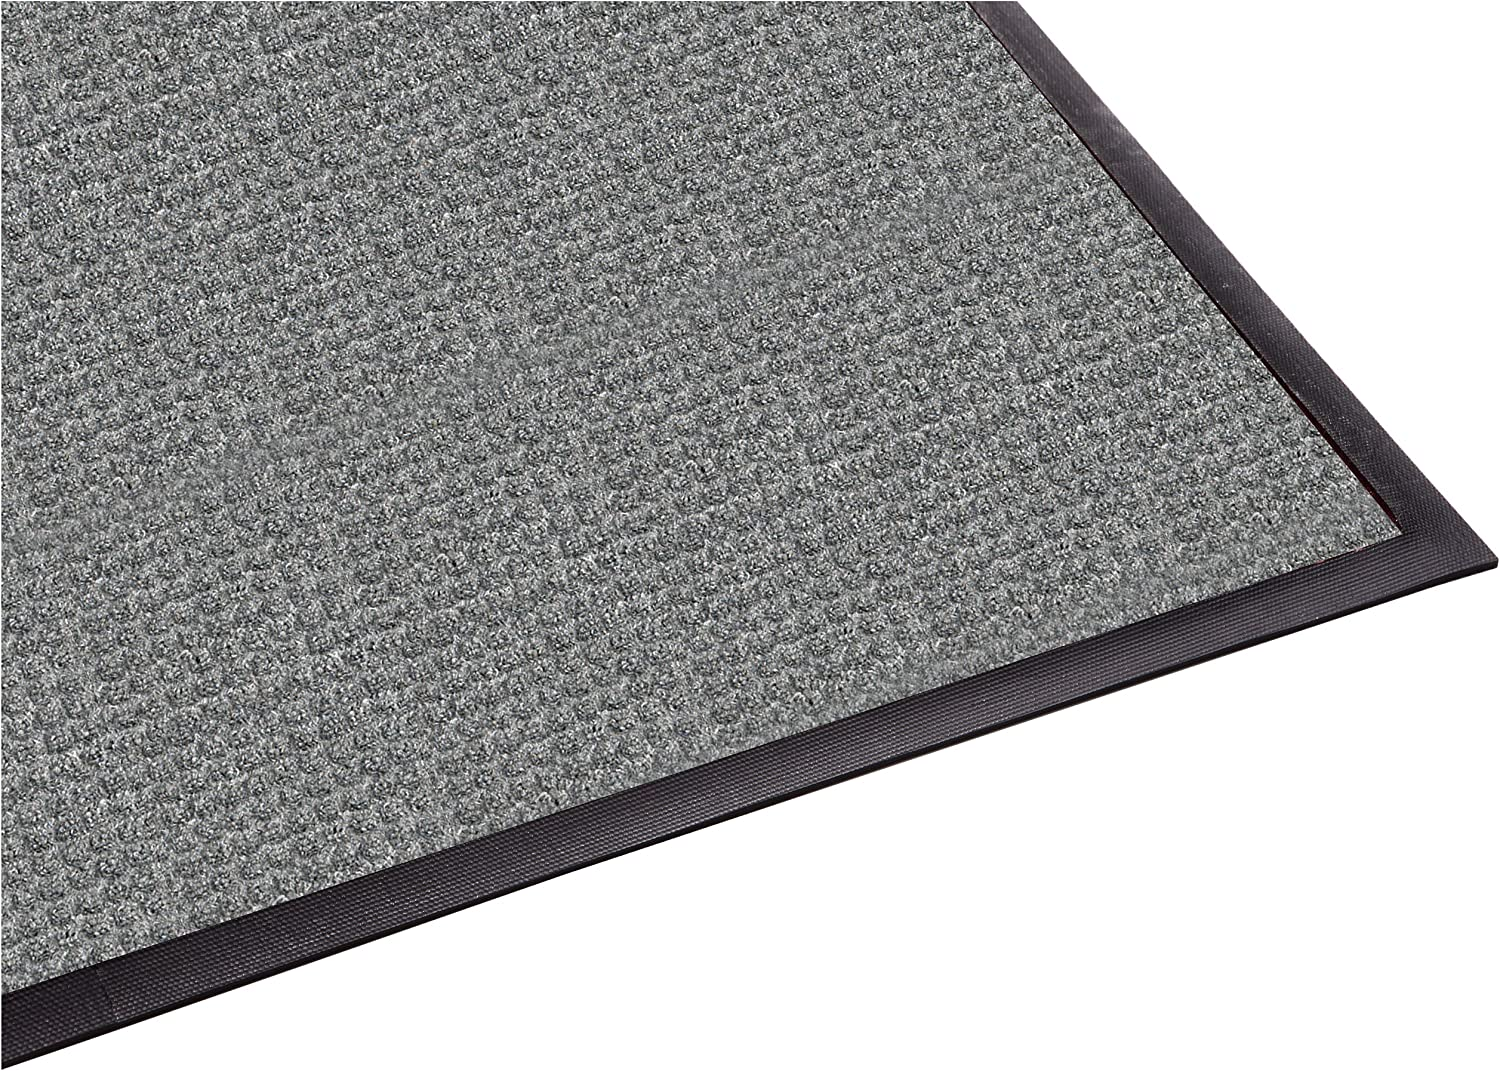 Guardian WaterGuard Indoor Outdoor Wiper Scraper Floor Mat, Rubber Nylon, 3'x10', Grey